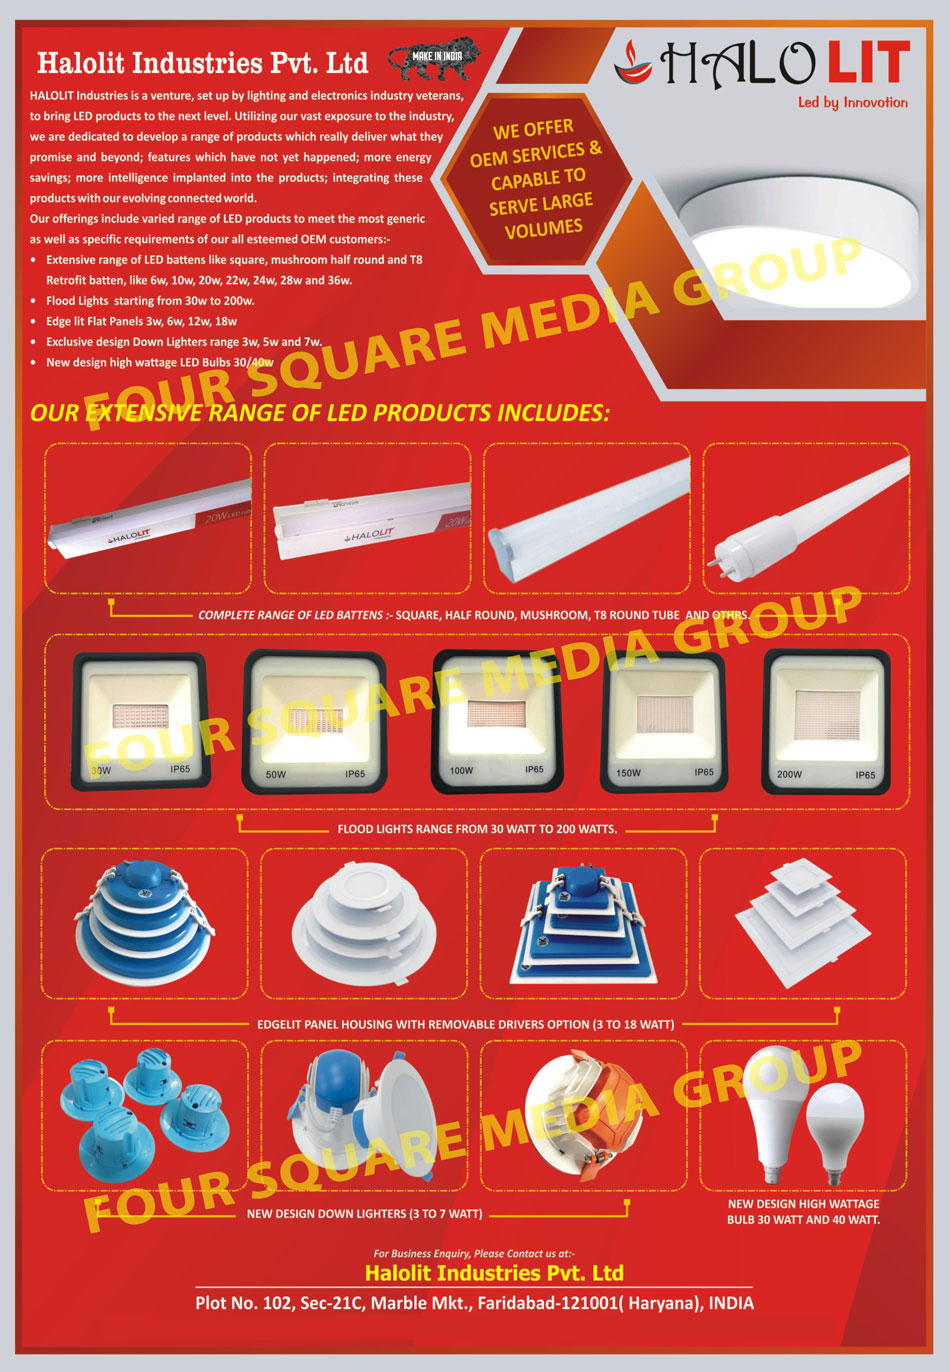 Led Battens, Flood Lights, Flat Panels, Down Lighters, Led Bulbs, Panel Housing